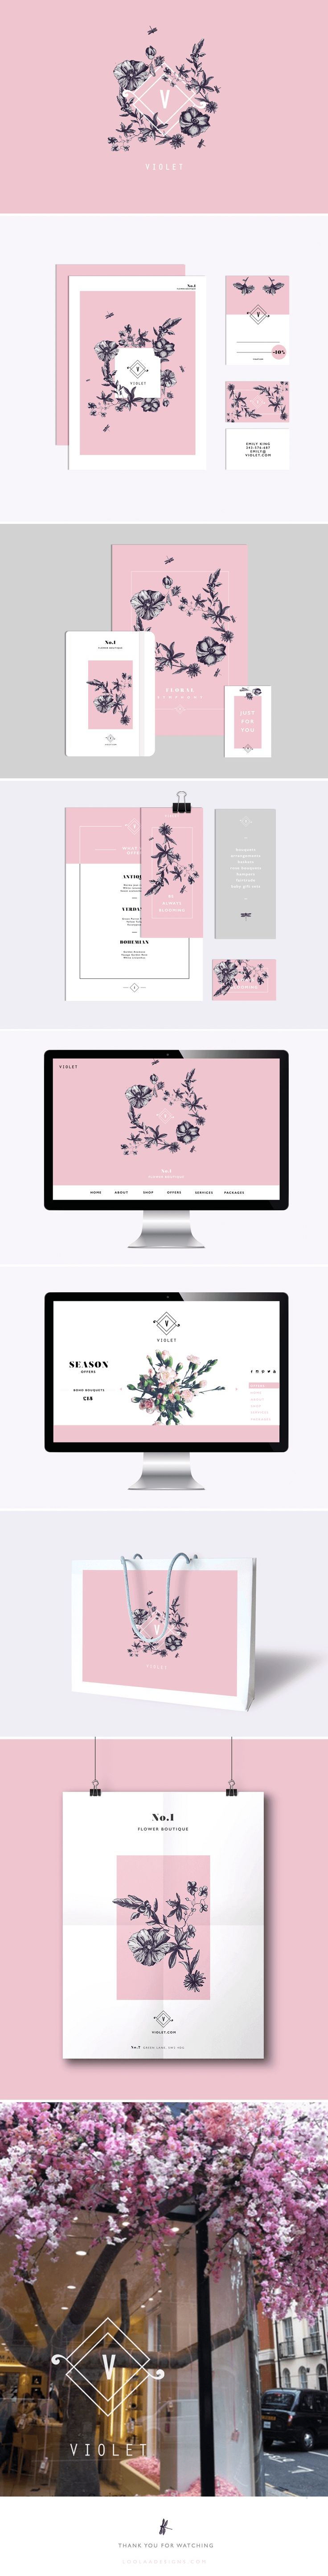 Branding and logo design / hand drawn boho flowers + pink + grey // loolaadesigns.com